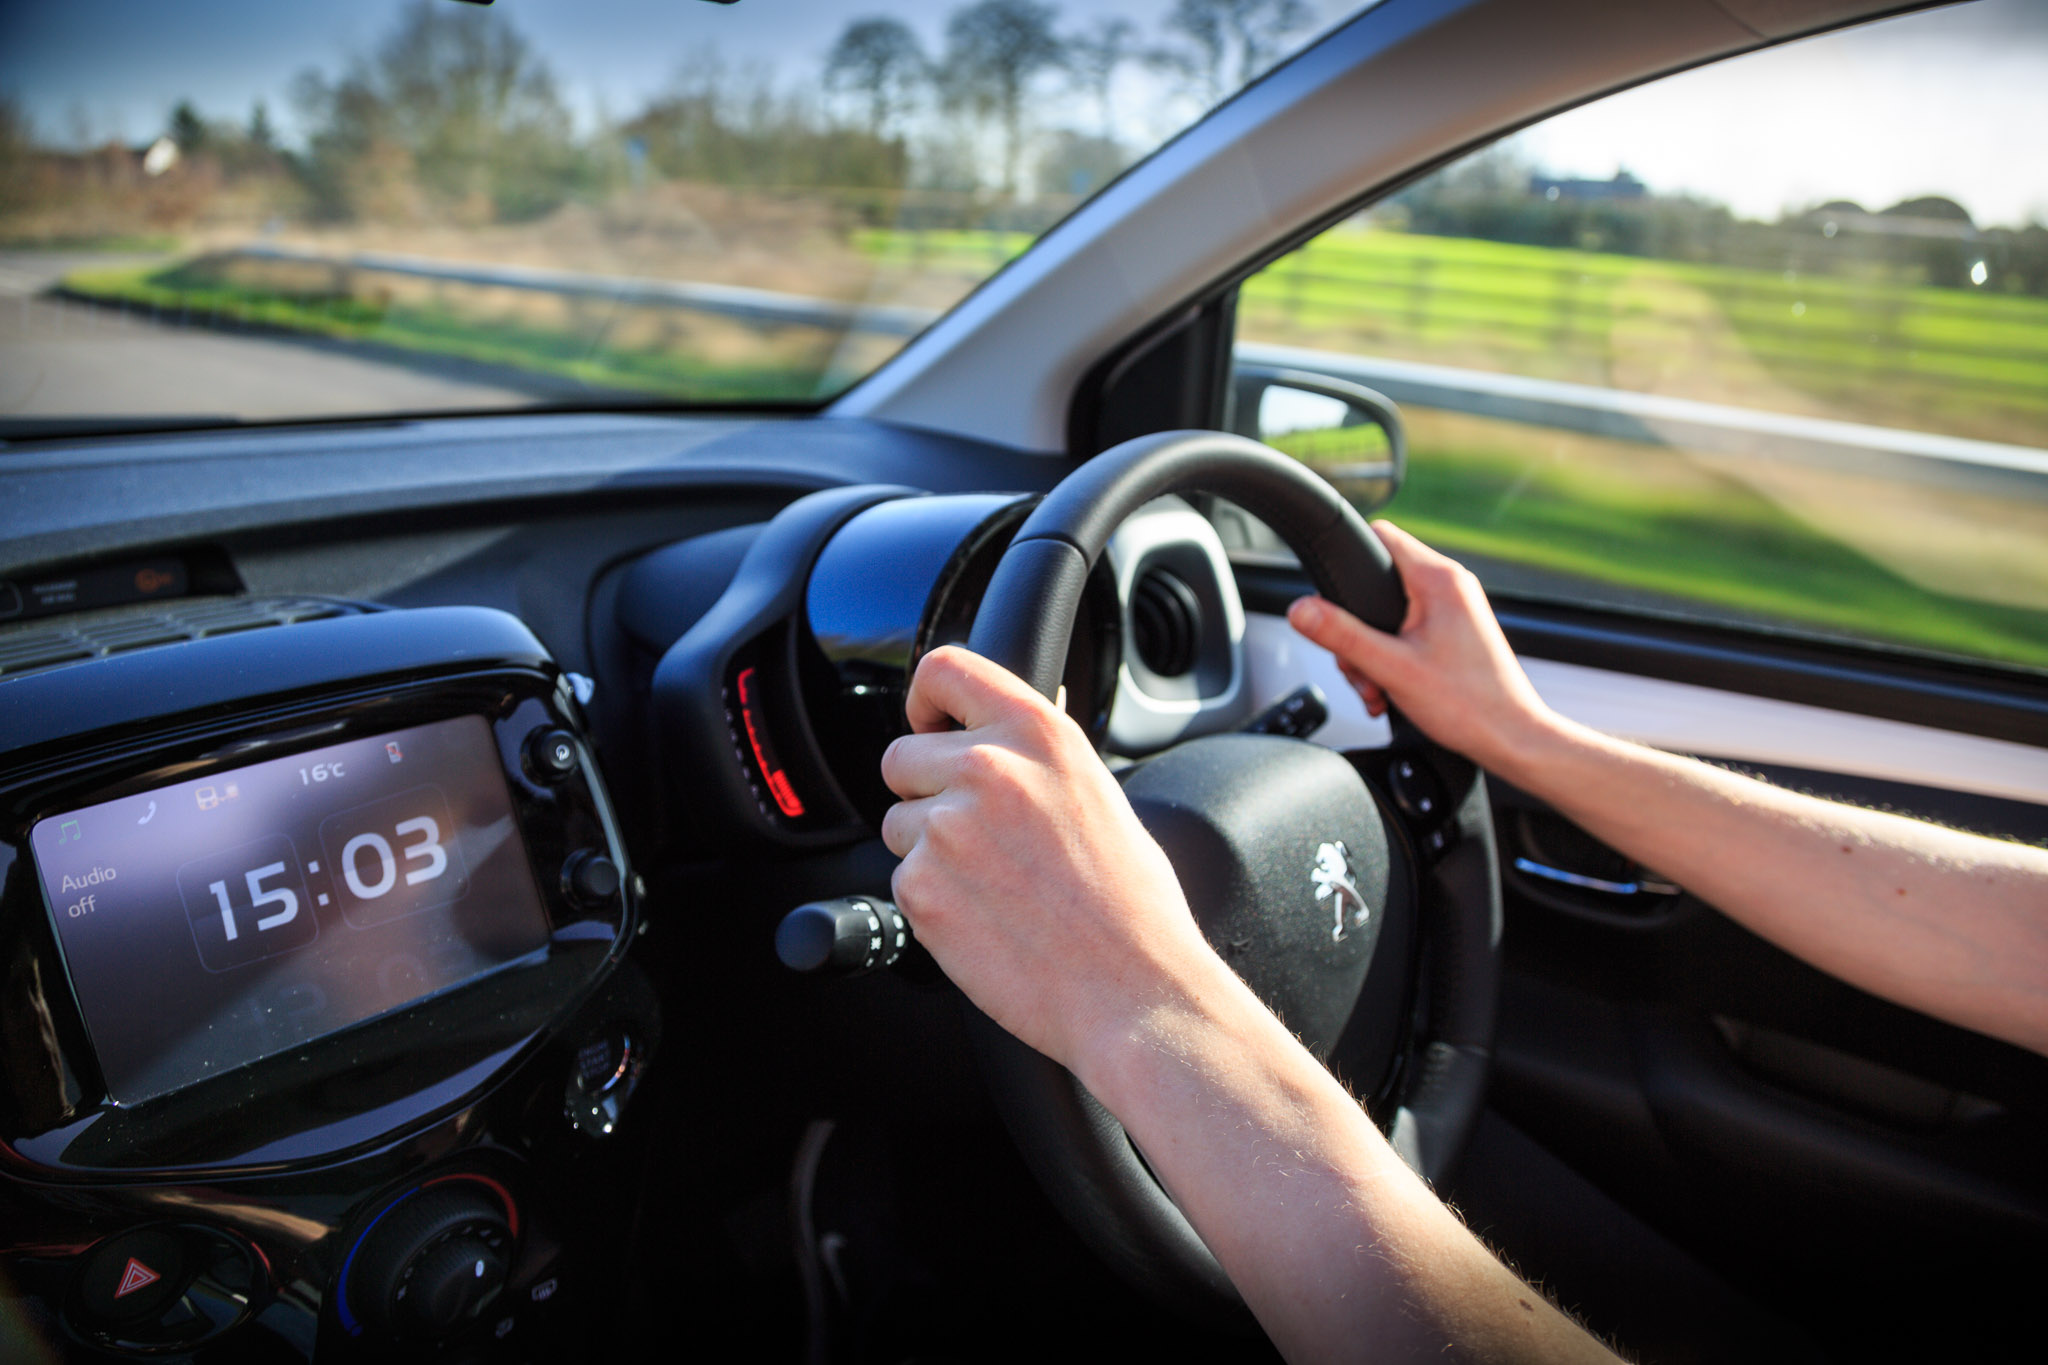 2017 peugeot 108 allure top 5 things we love for Peugeot 107 allure review